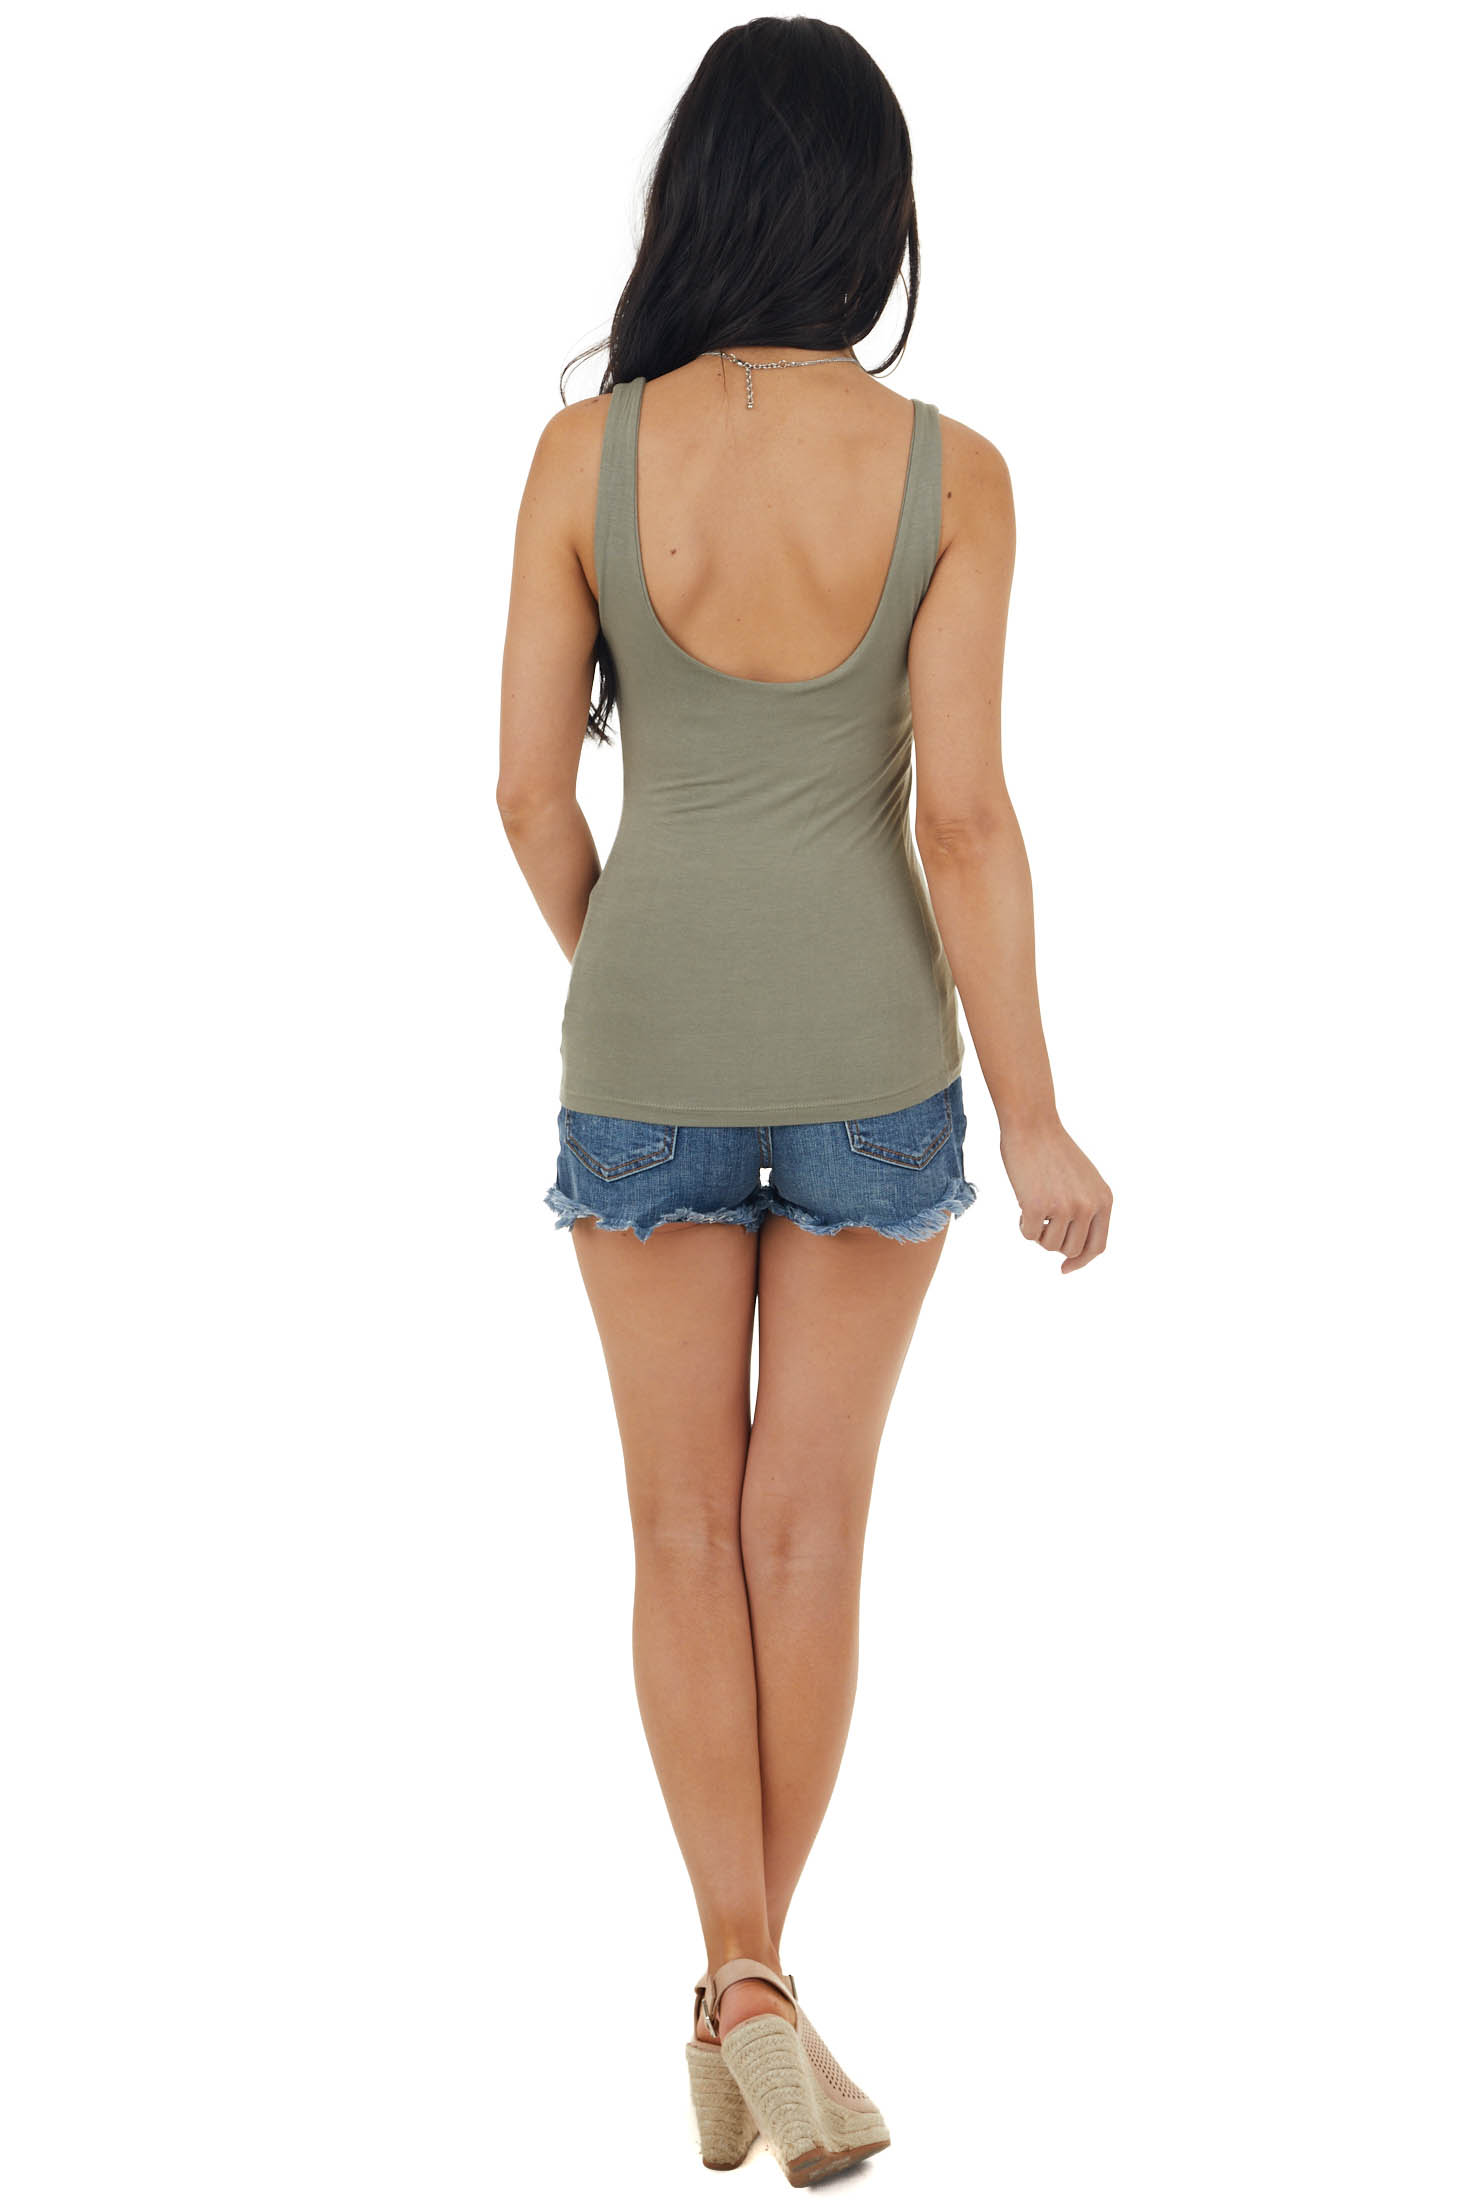 Olive Green Lightweight Sleeveless Stretchy Knit Tank Top